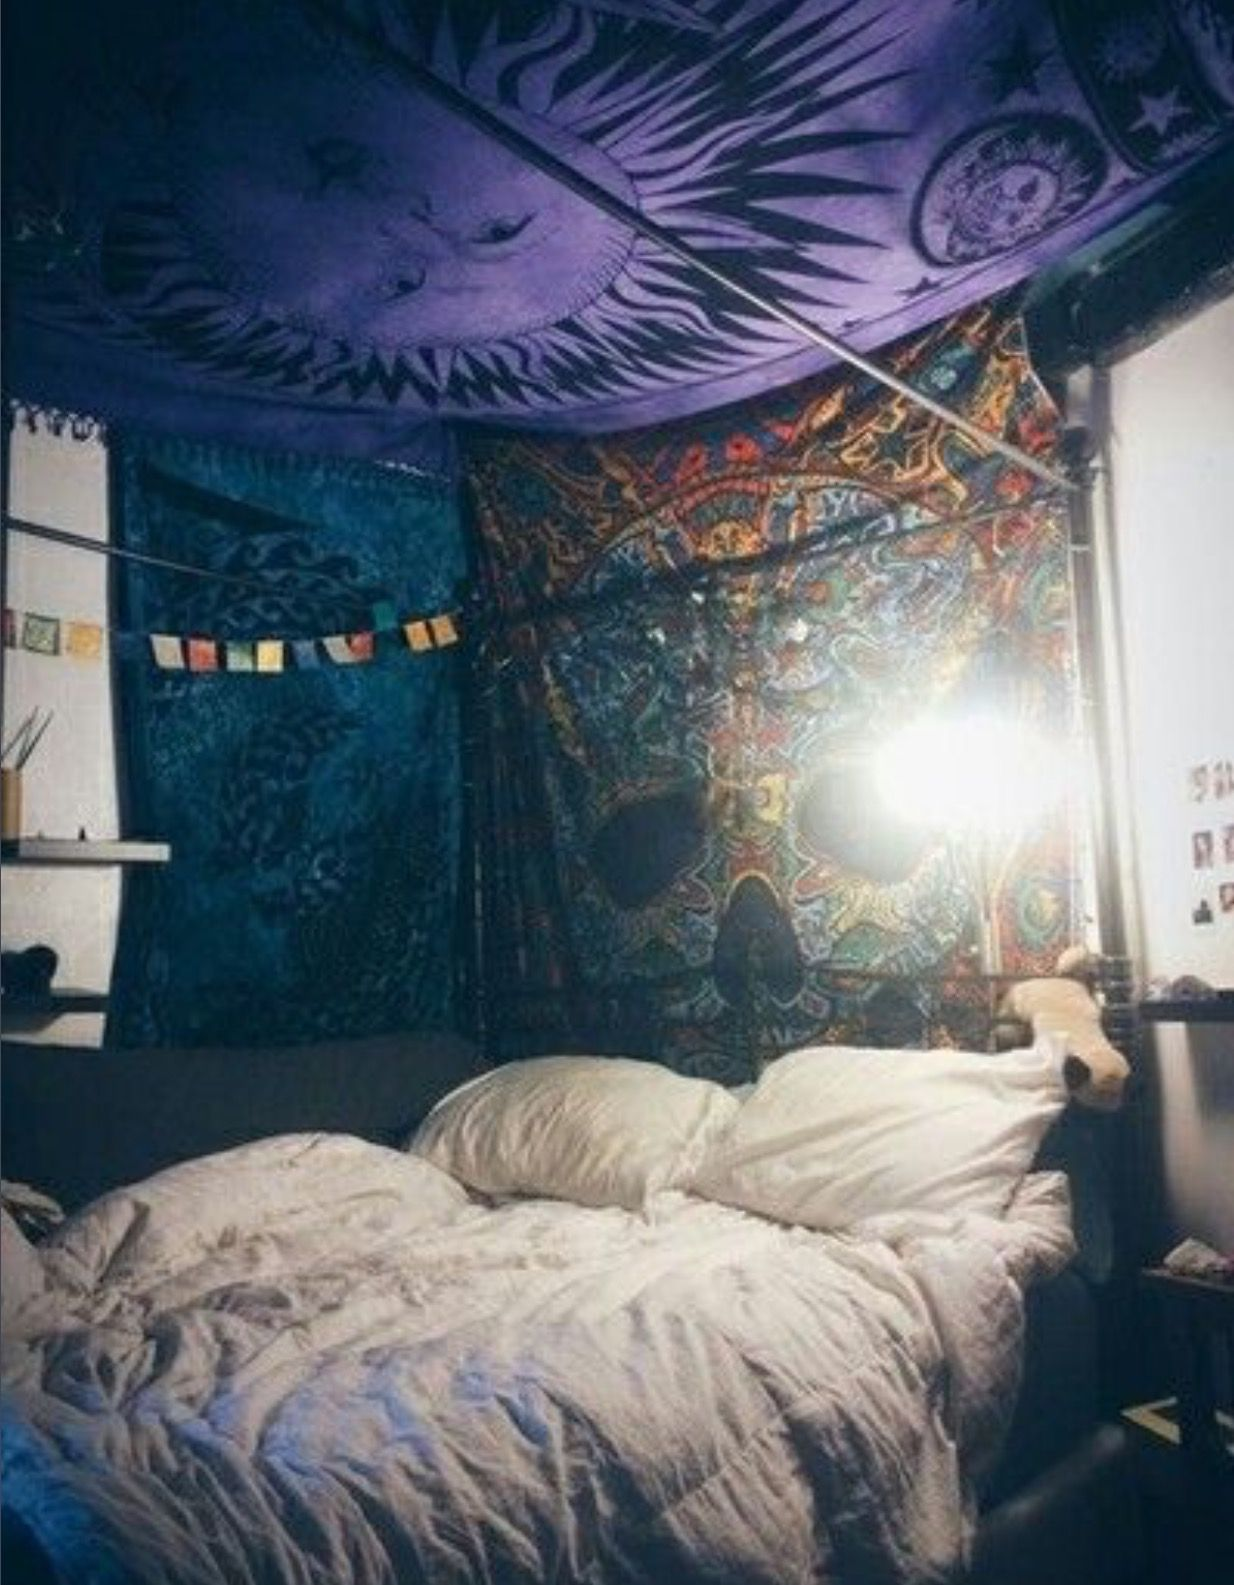 Not My Style But I Like How They Did The Tapestries